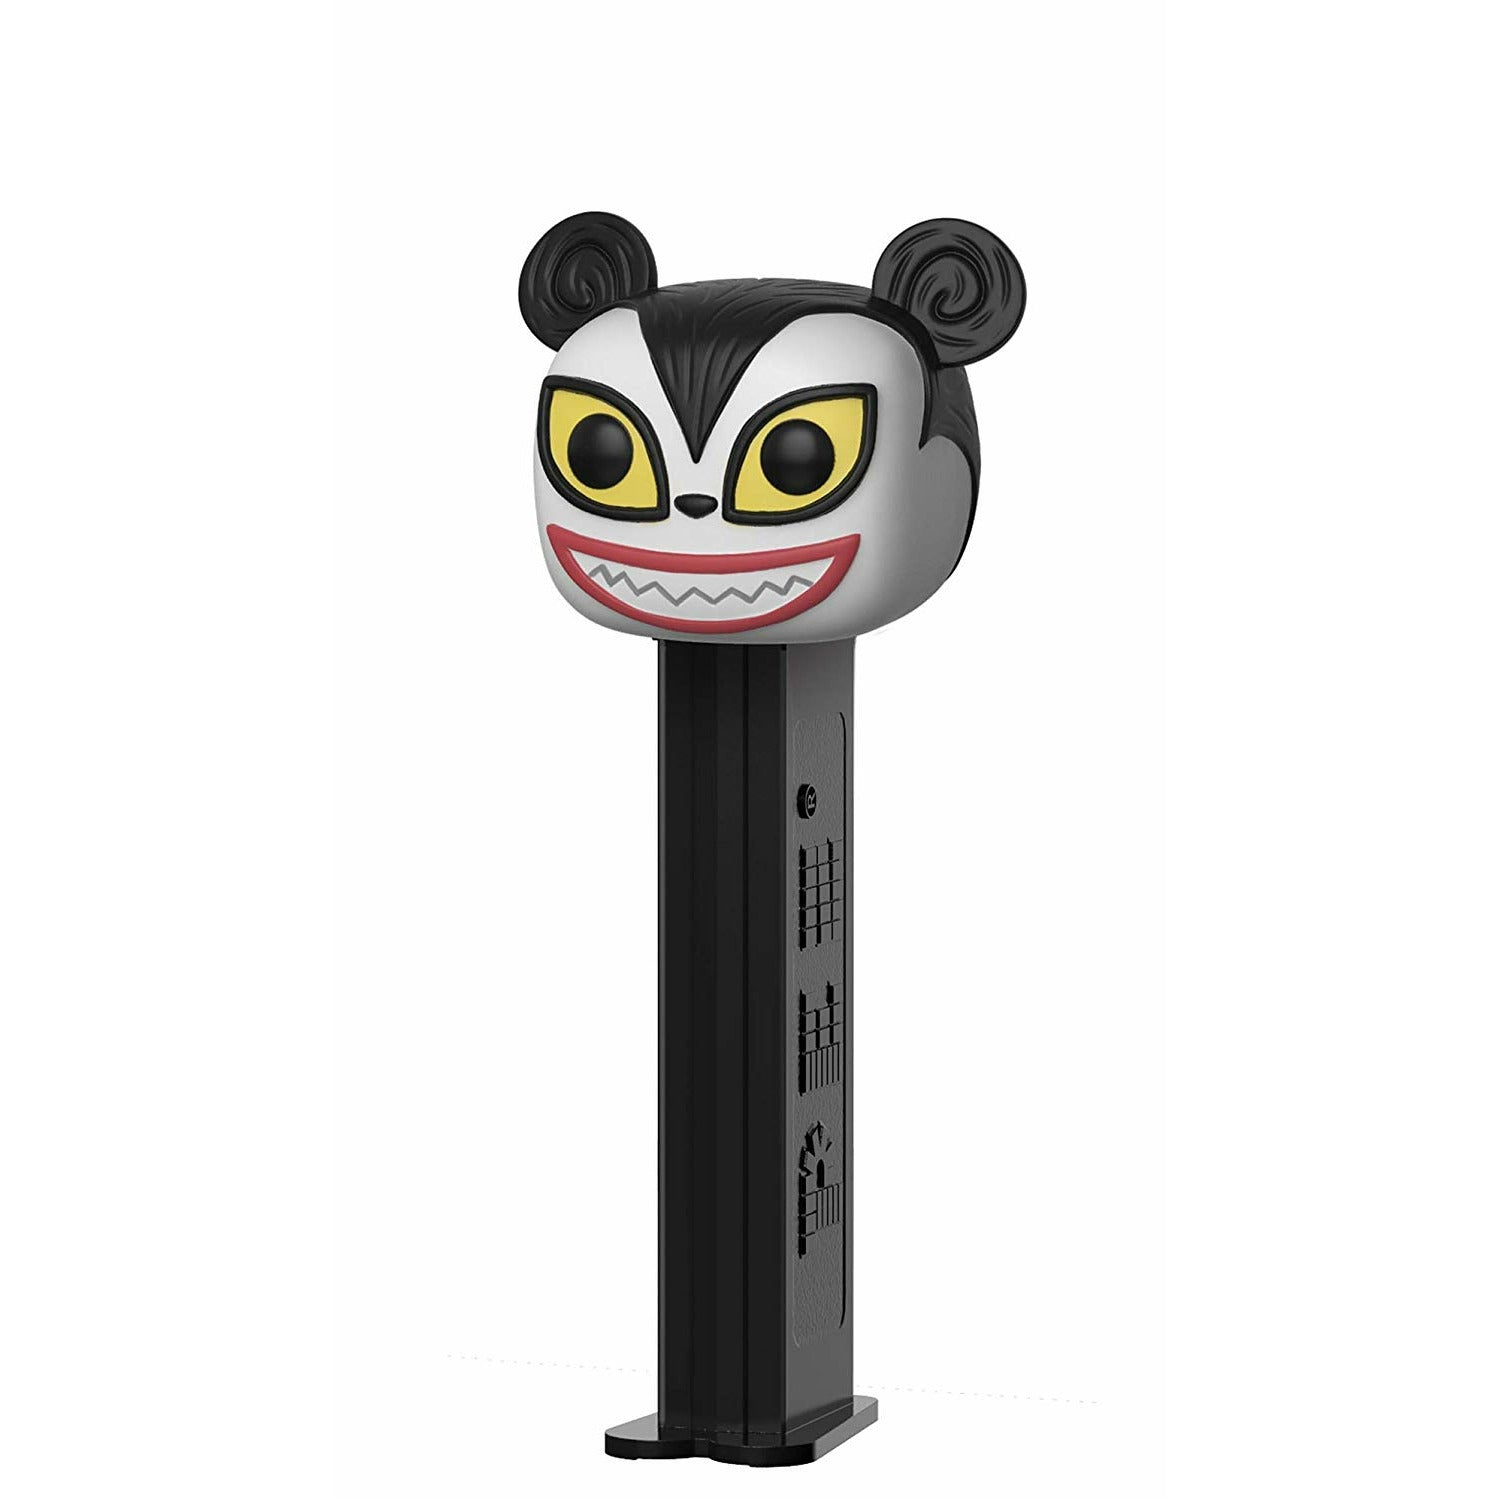 The Nightmare Before Christmas Vampire Teddy Pop! Pez Candy & Dispenser